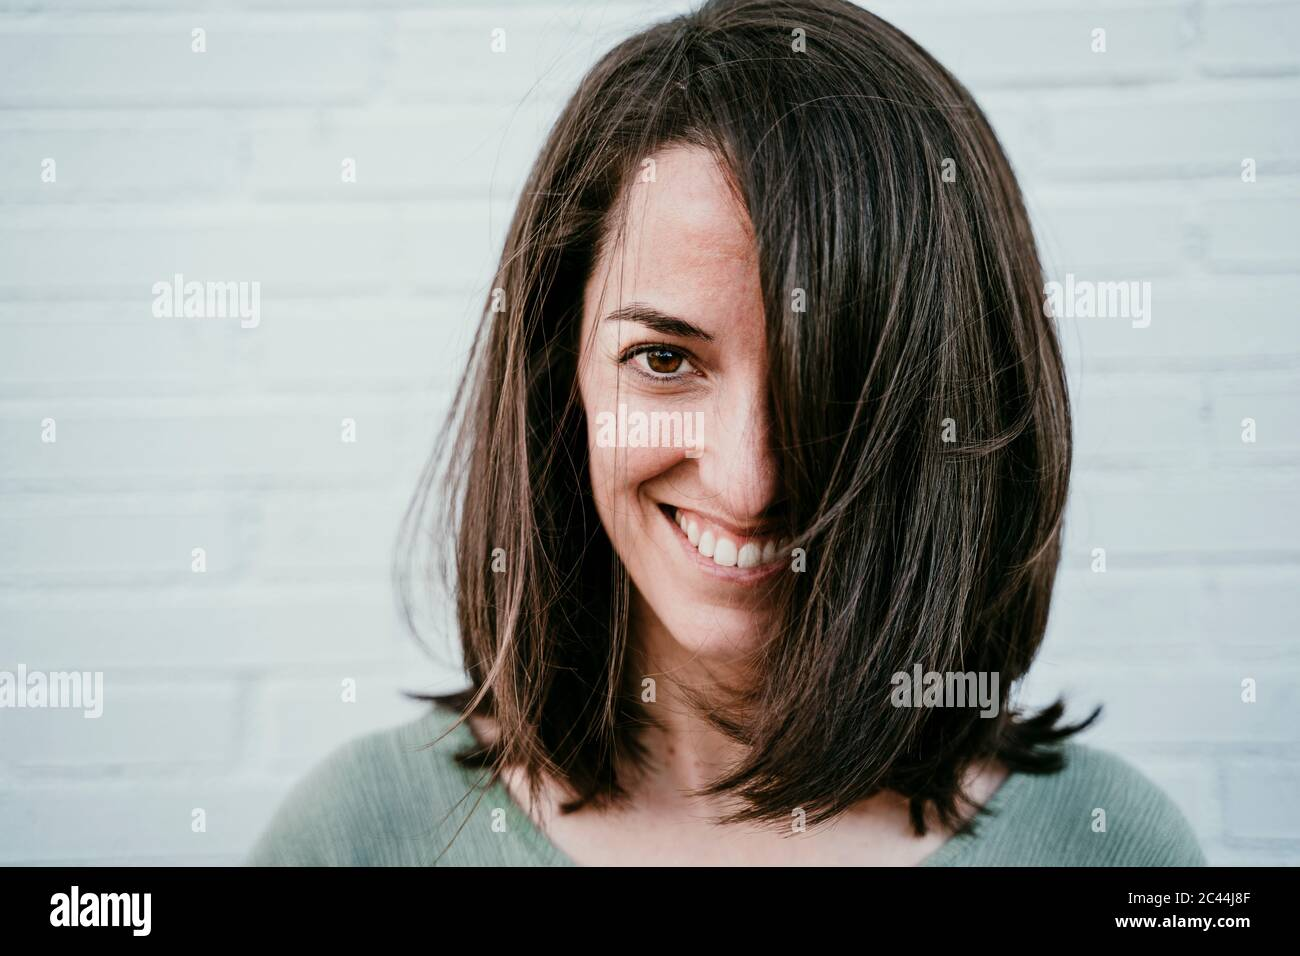 Portrait of happy woman with brown hair Stock Photo